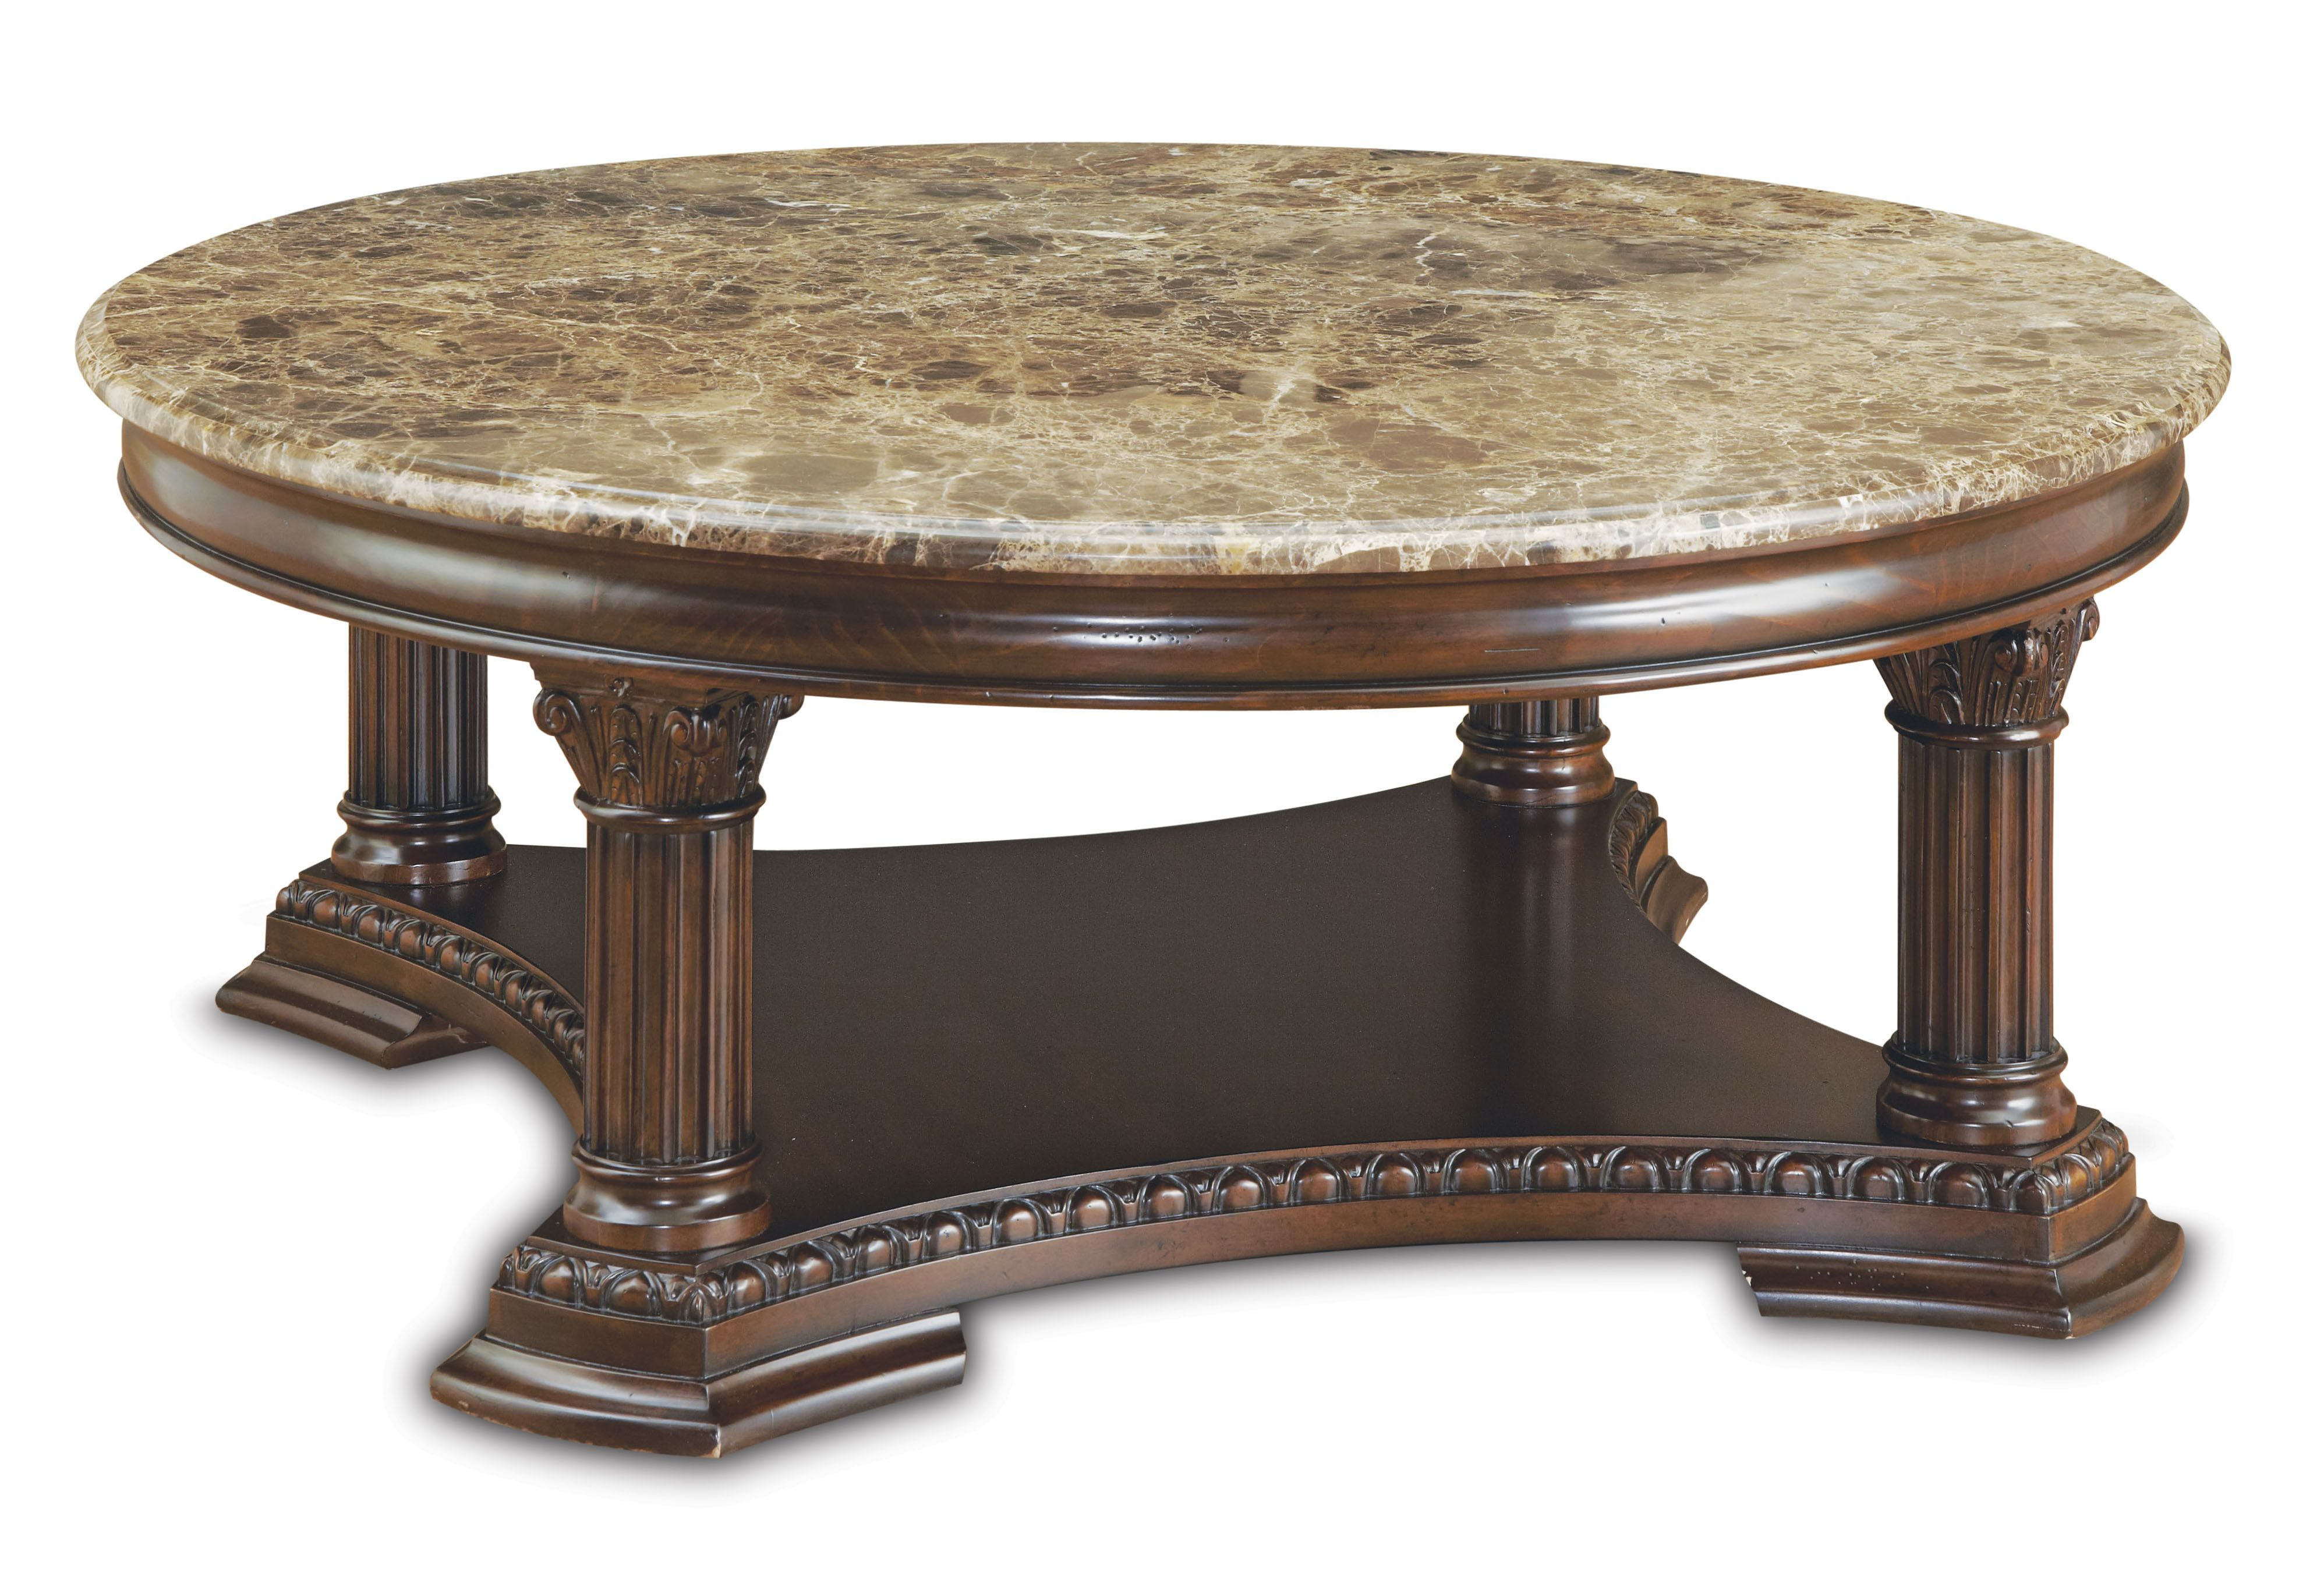 Popular Wooden Coffee Tables Coffee Tables Furniture Marble Top Coffee Table Coffee Table Granite Coffee Table [ 2695 x 3991 Pixel ]